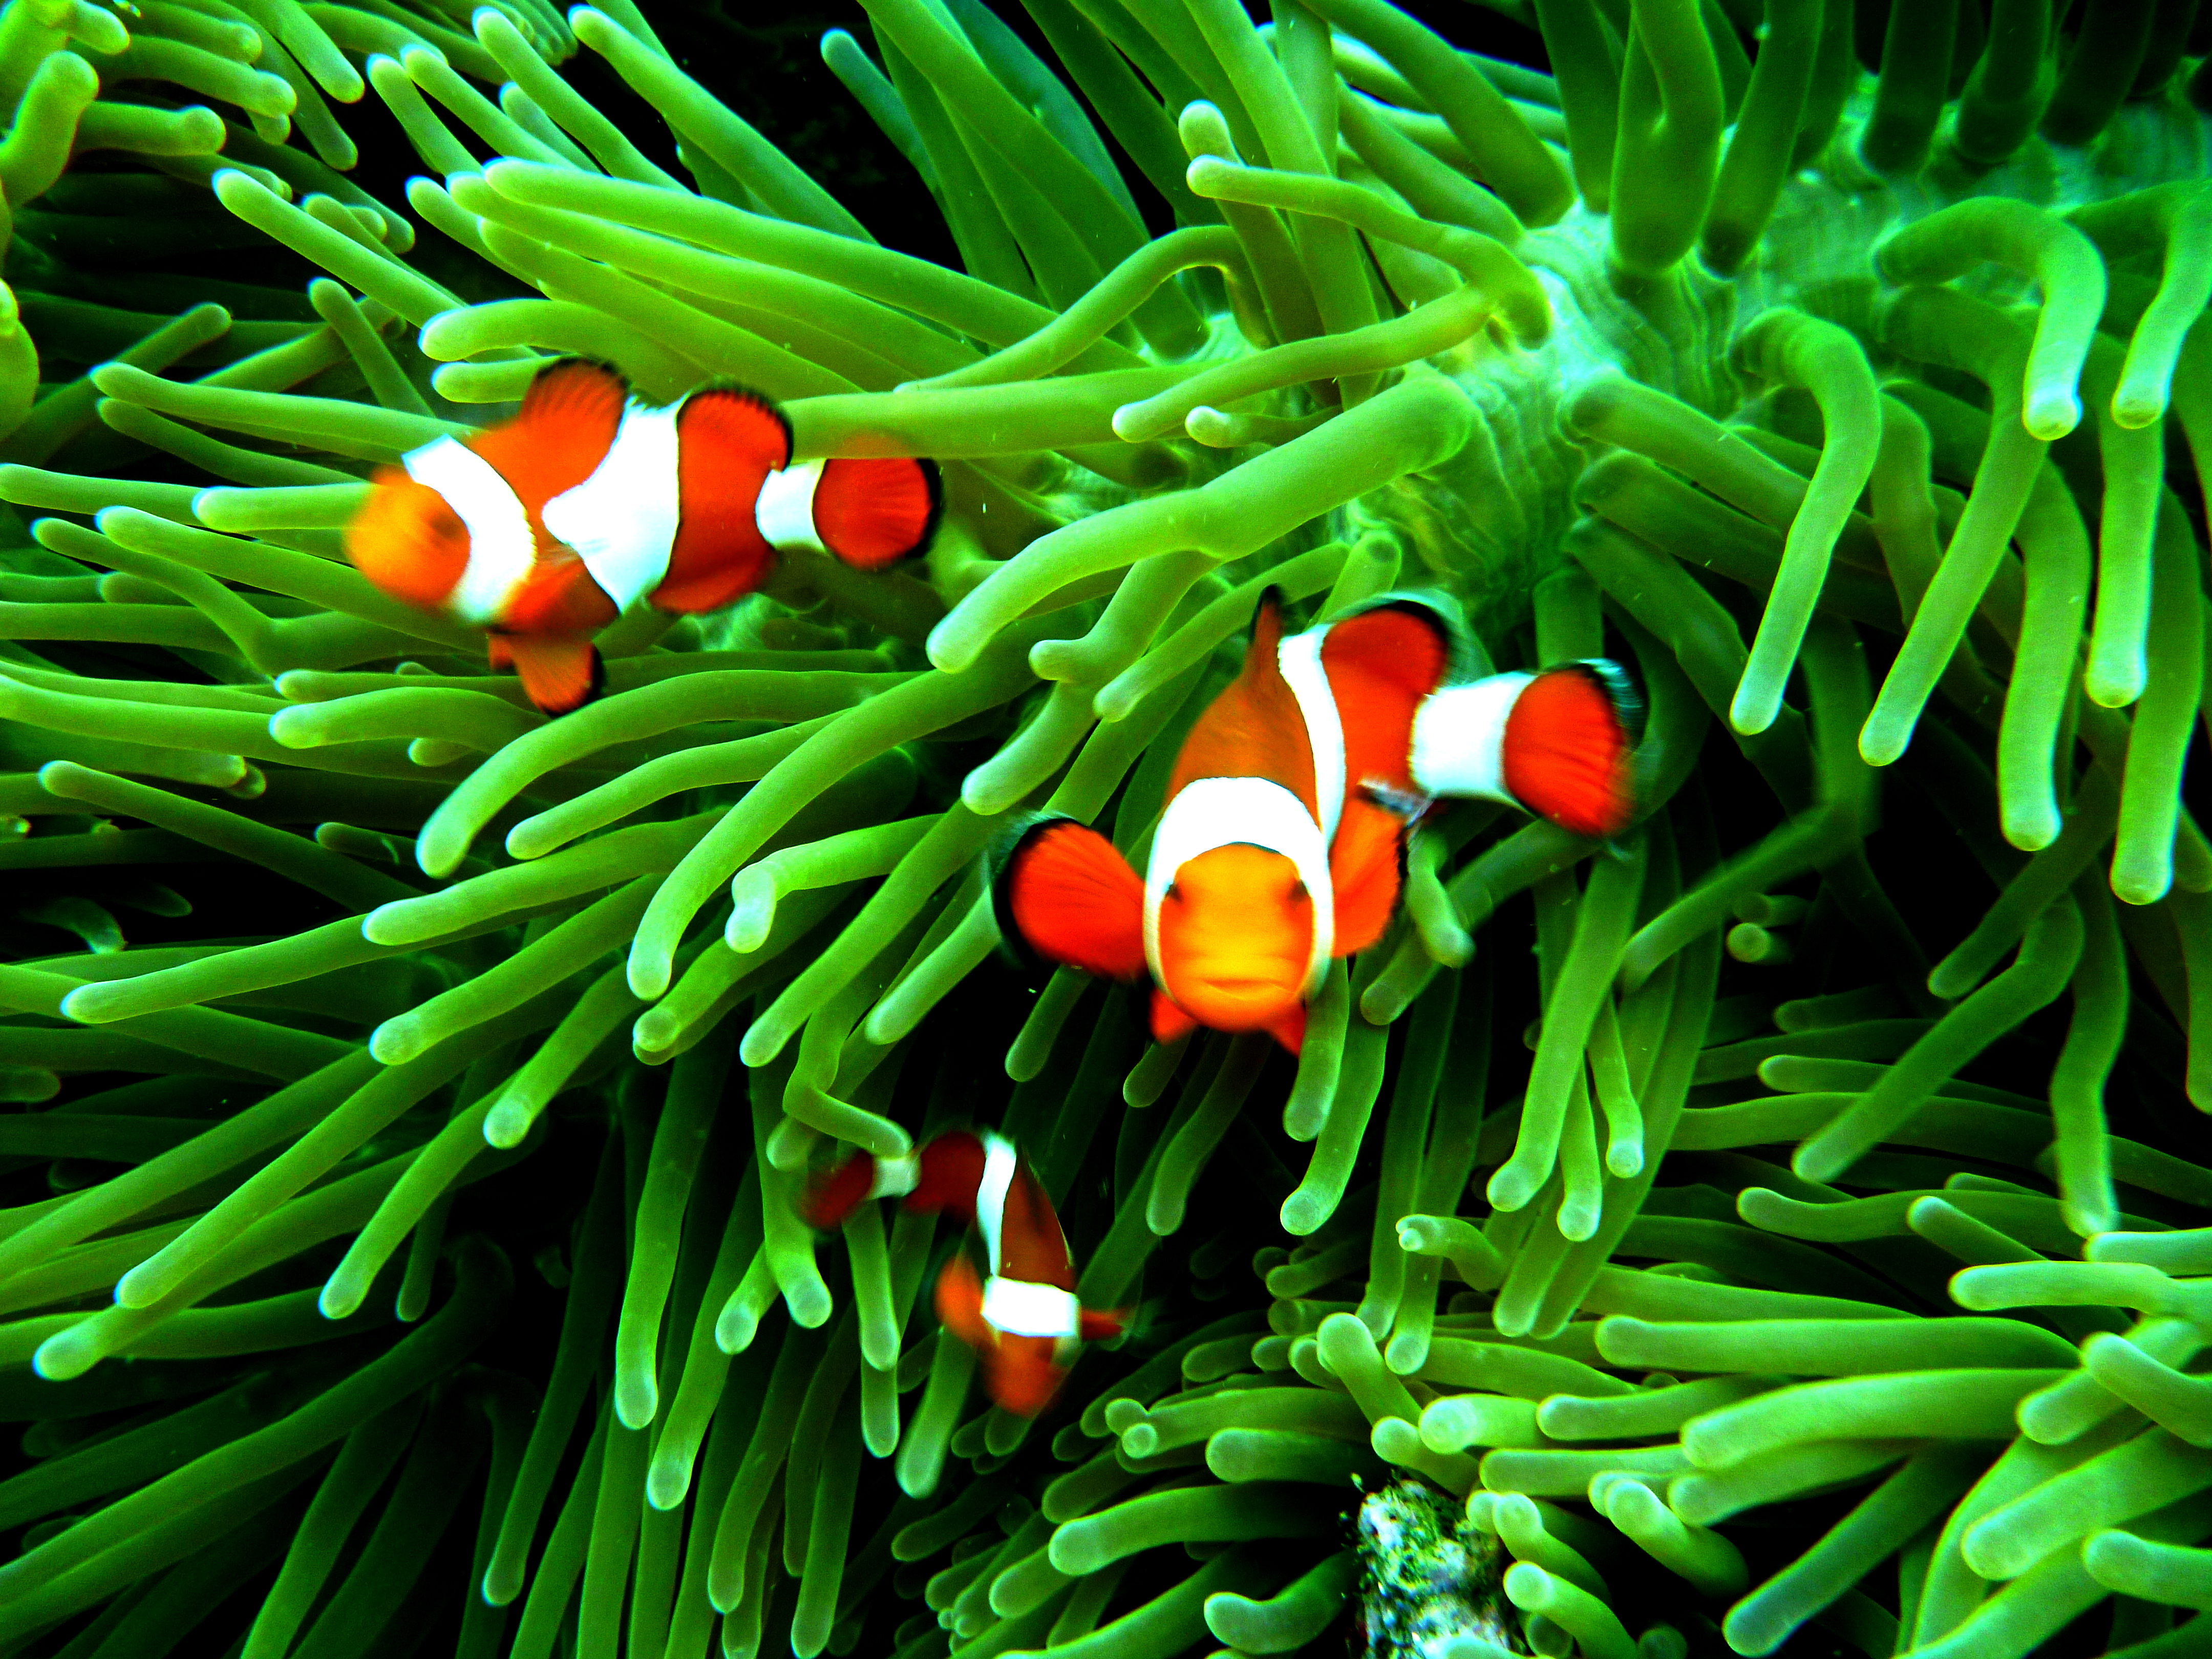 Wallpaper iphone nemo - Clown Fish 21 Clown Fish Background Images For Iphone